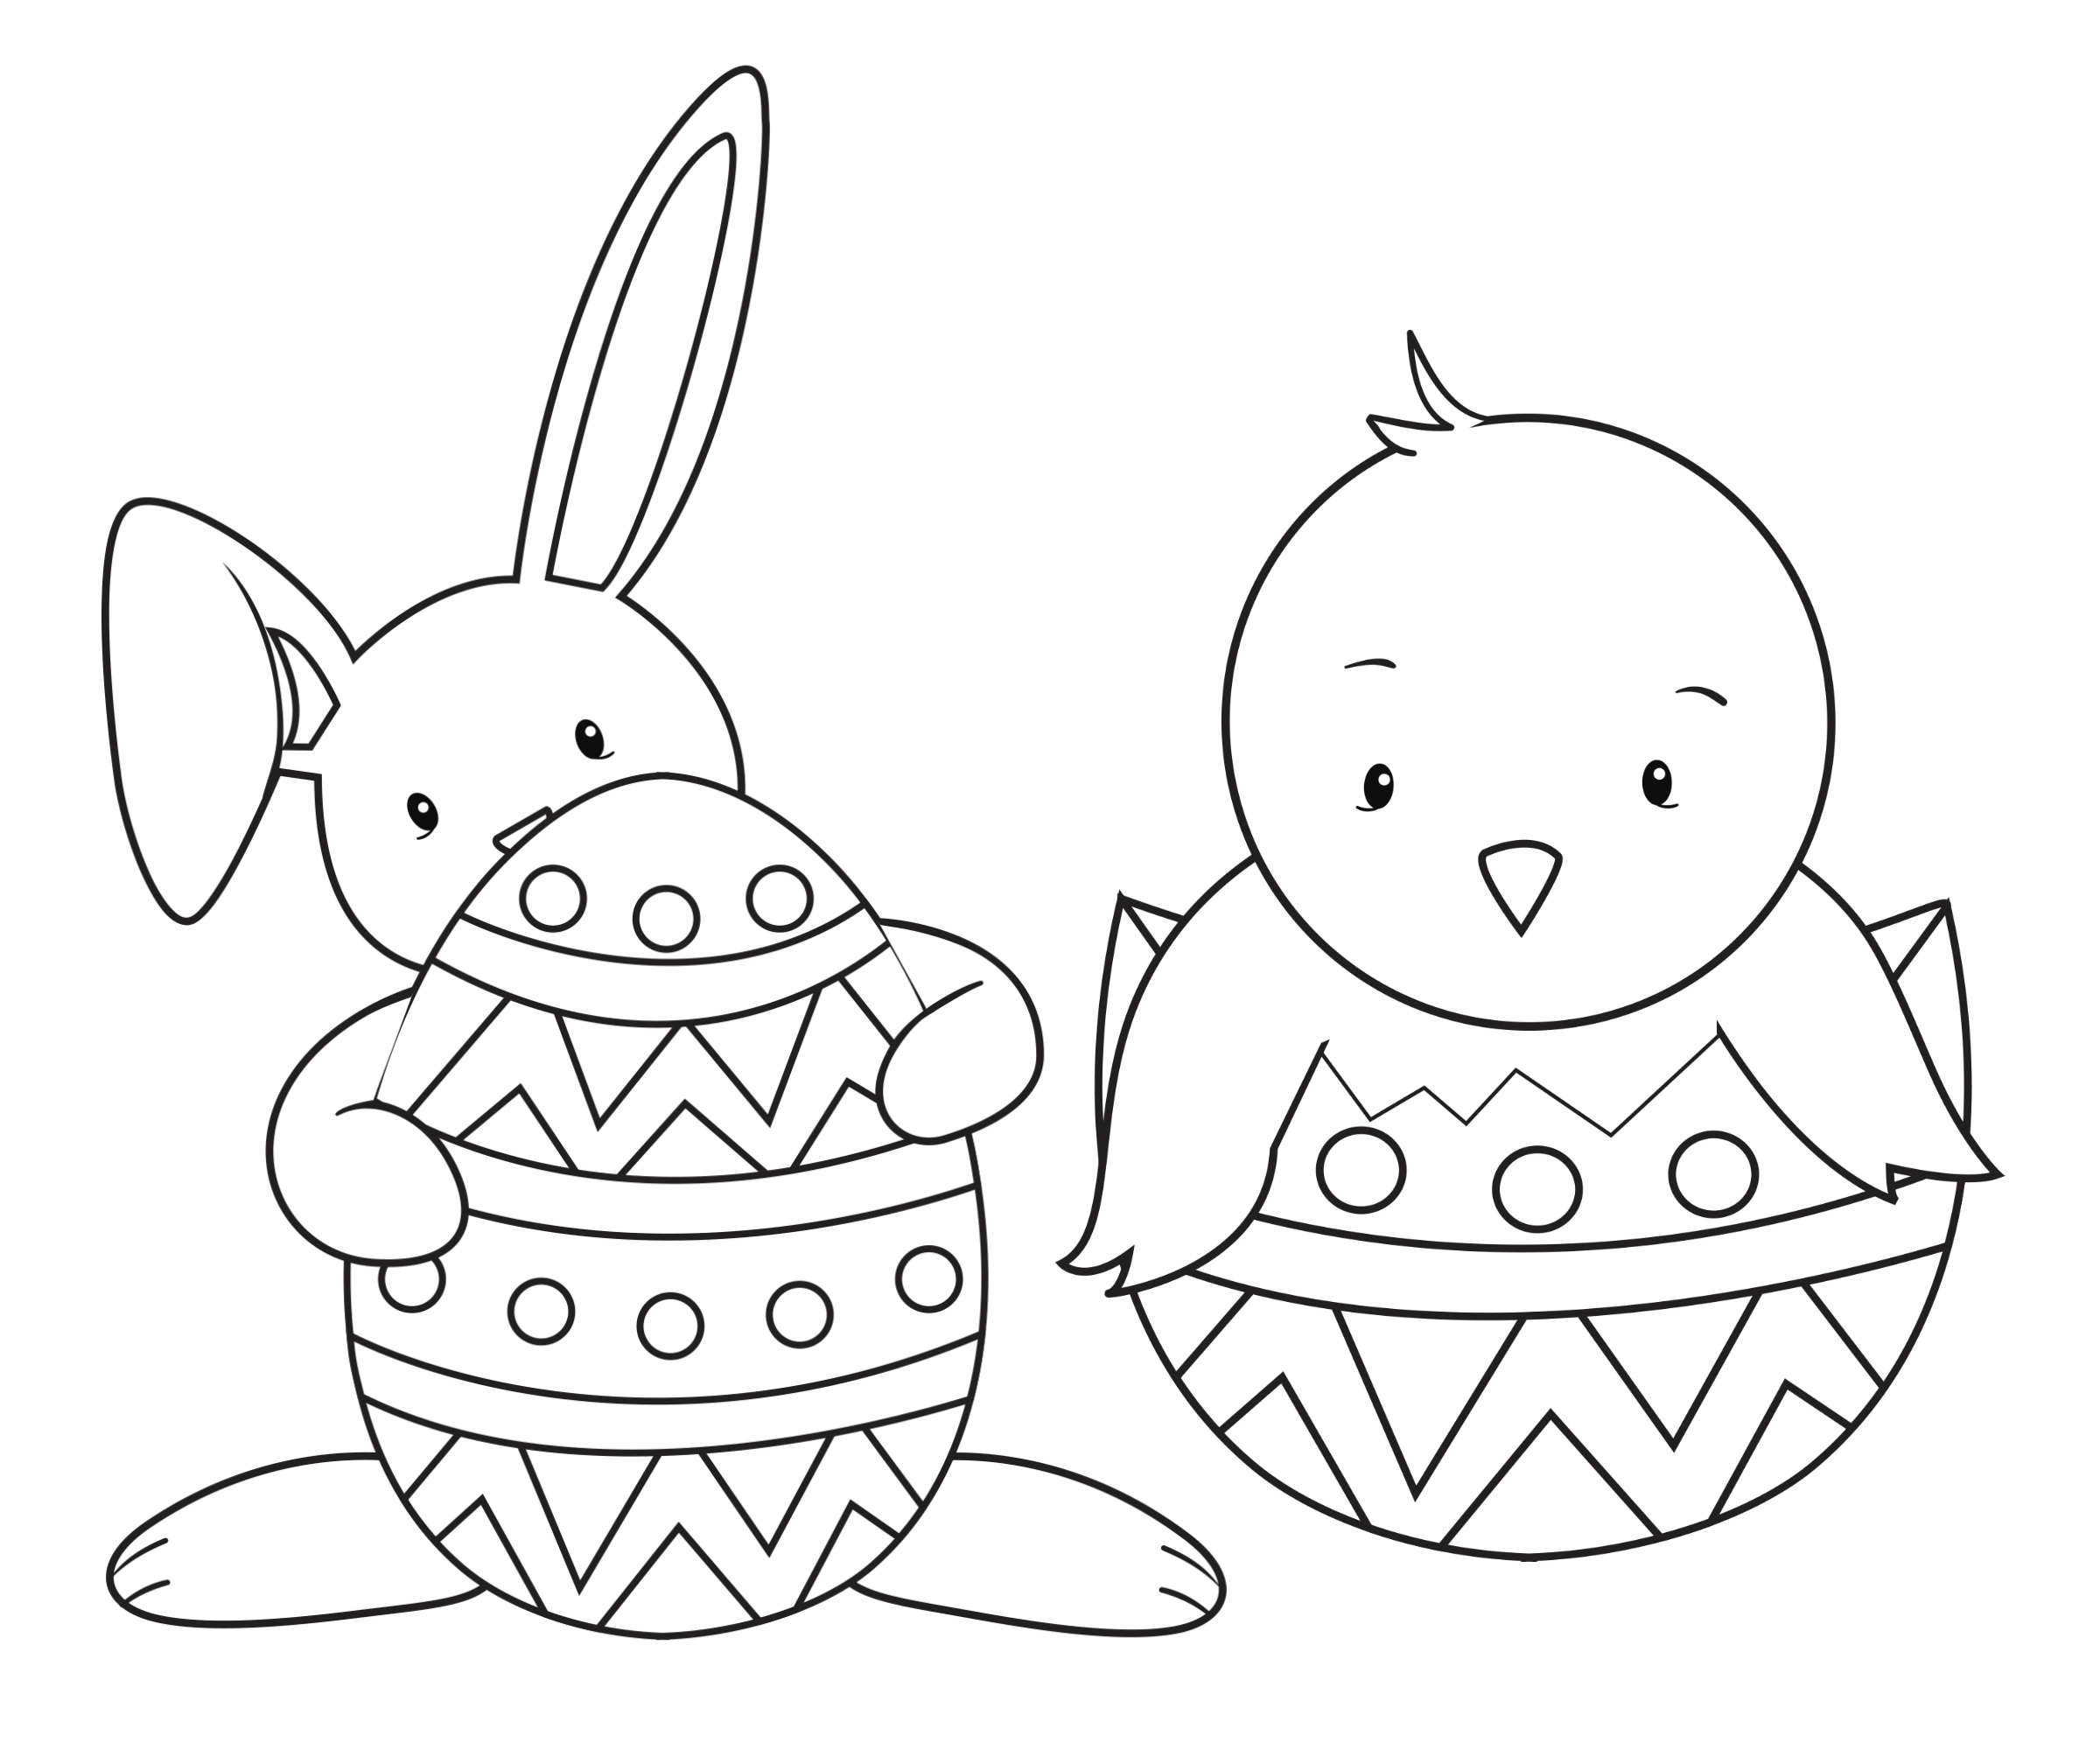 Coloring Pages For Easter Bunny : Easter coloring pages crazy little projects